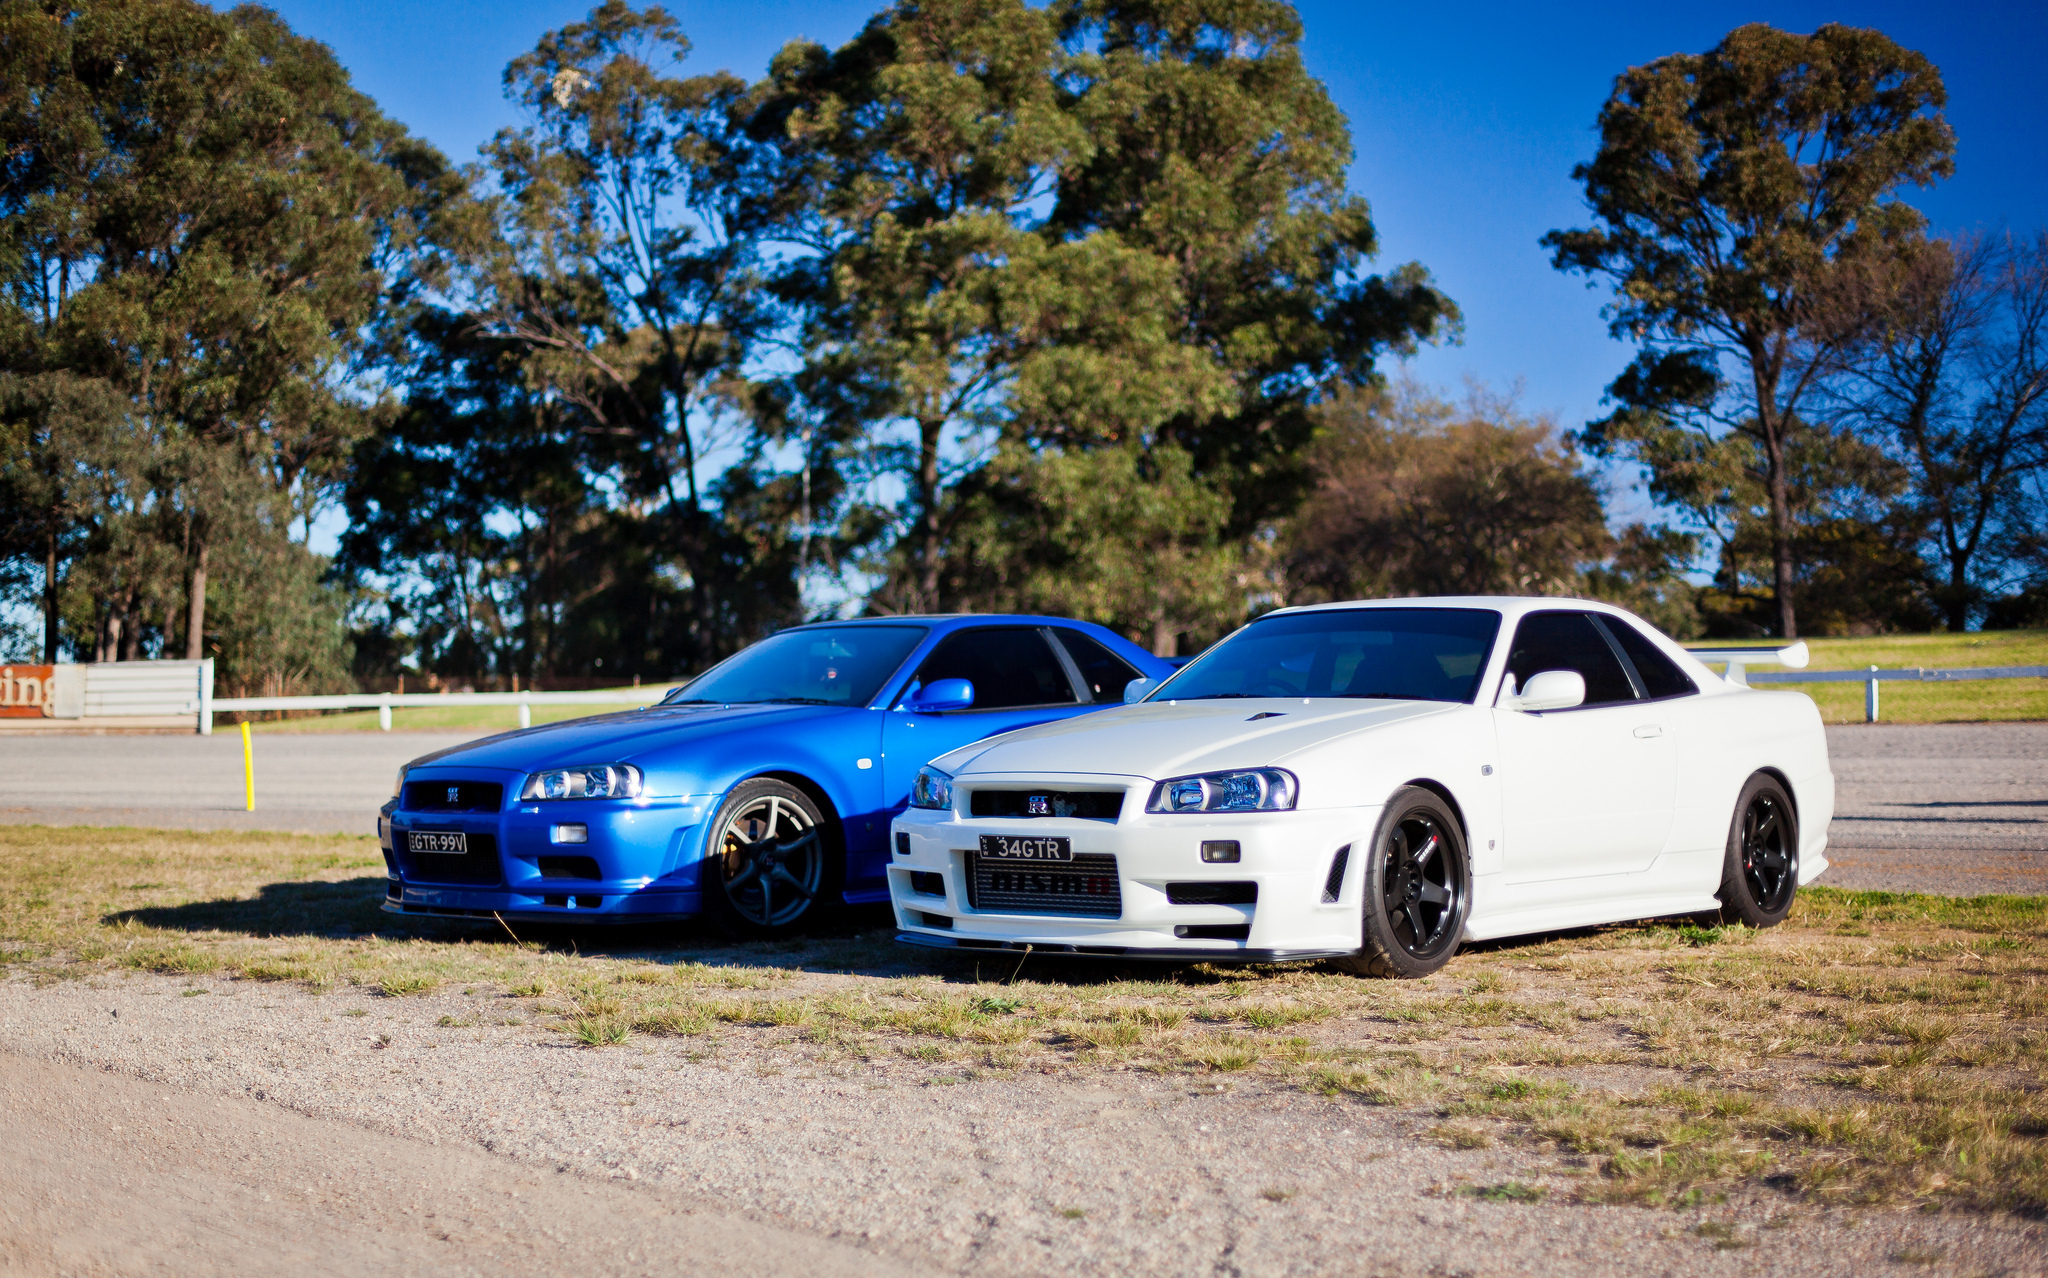 66 Nissan Skyline Hd Wallpapers Background Images Wallpaper Abyss